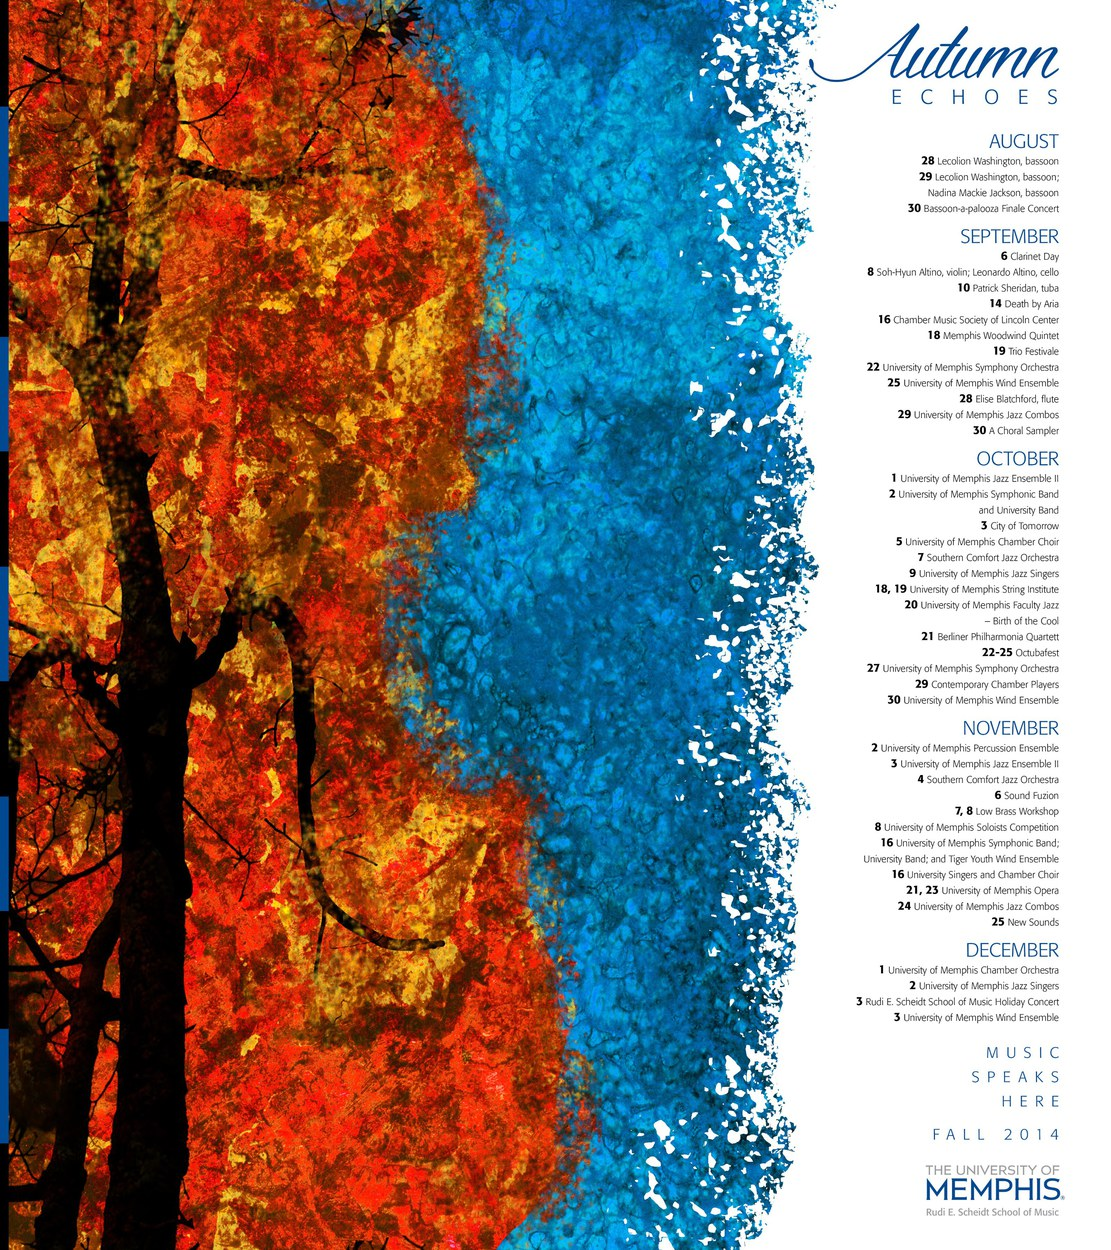 Fall music program poster; original illustration